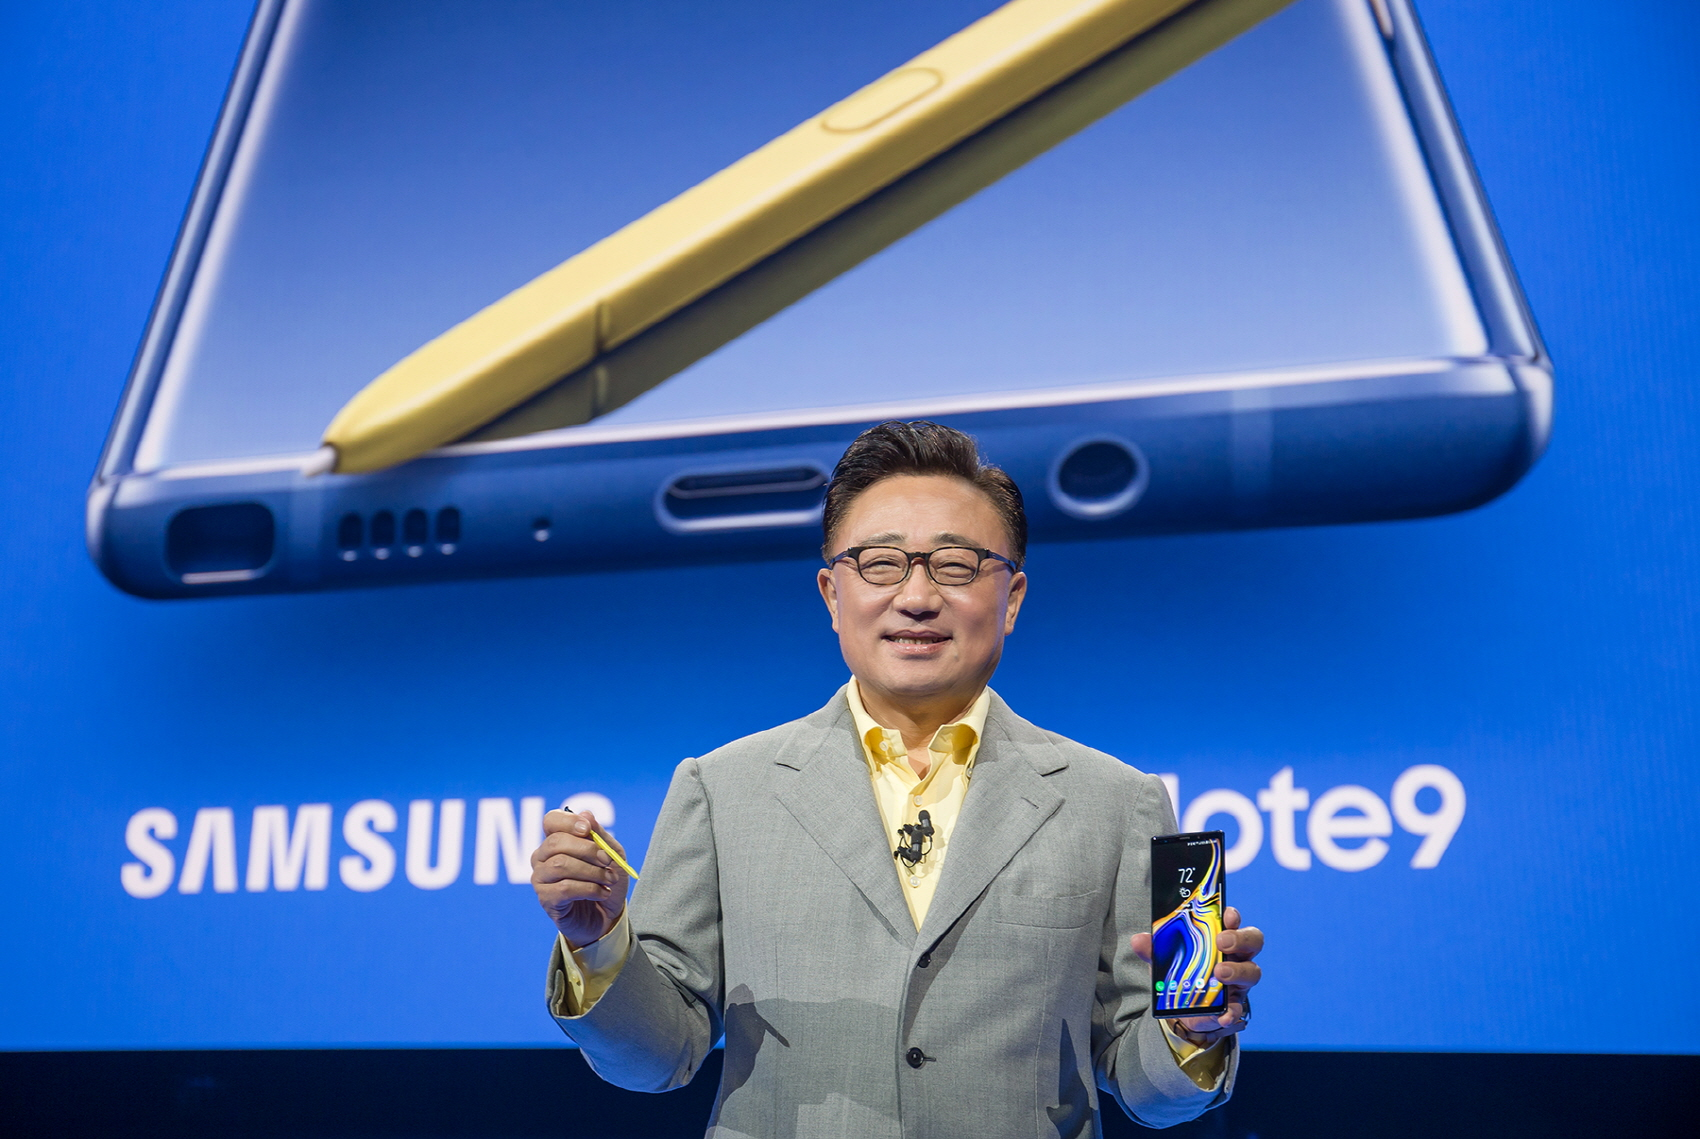 Samsung Releases Super Powerful Galaxy Note: 9